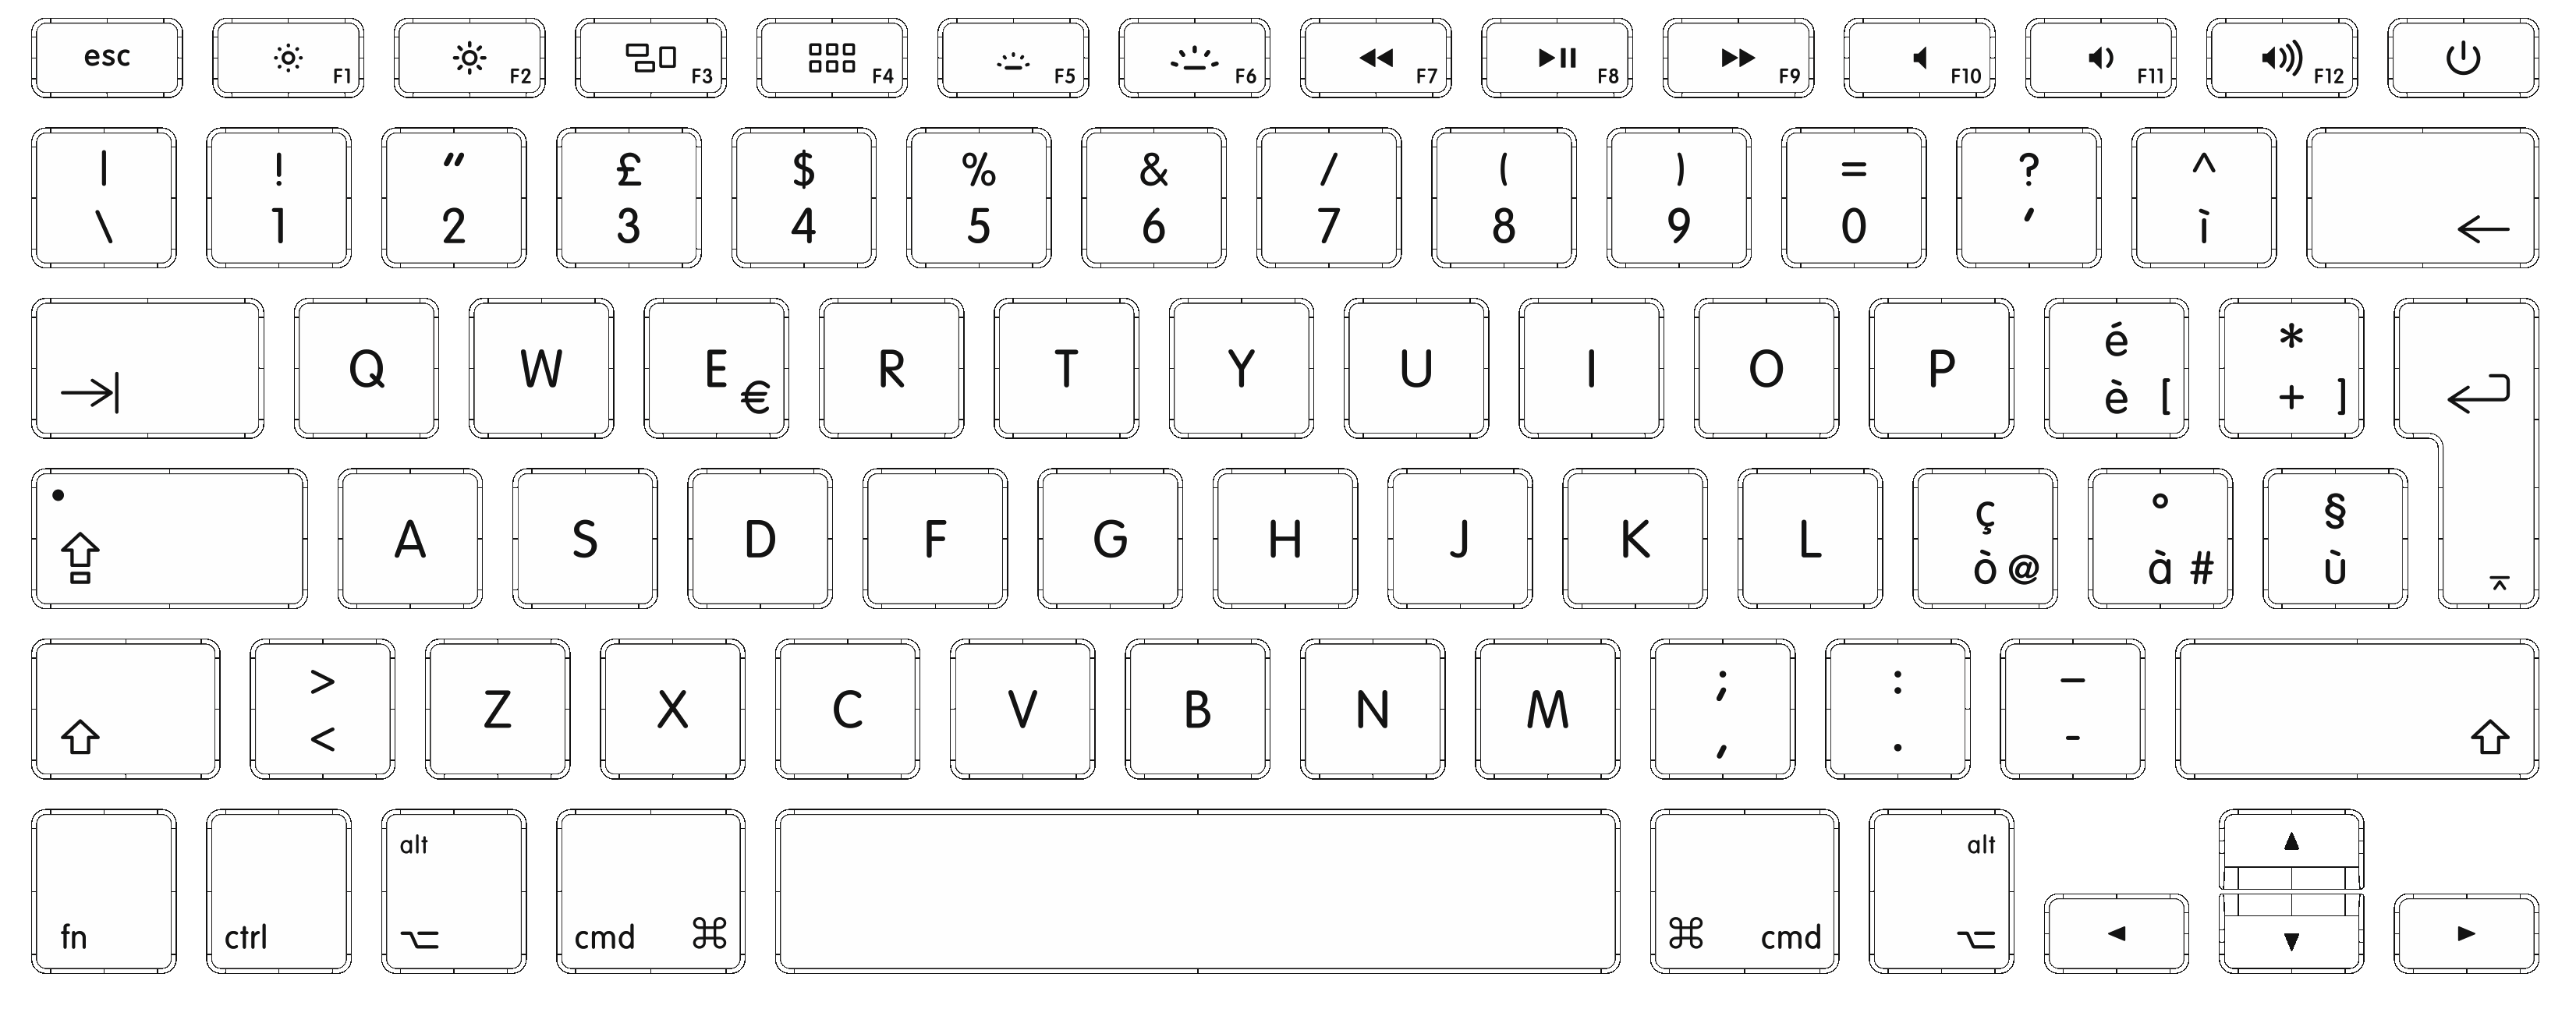 macbook - which keyboard layout is this